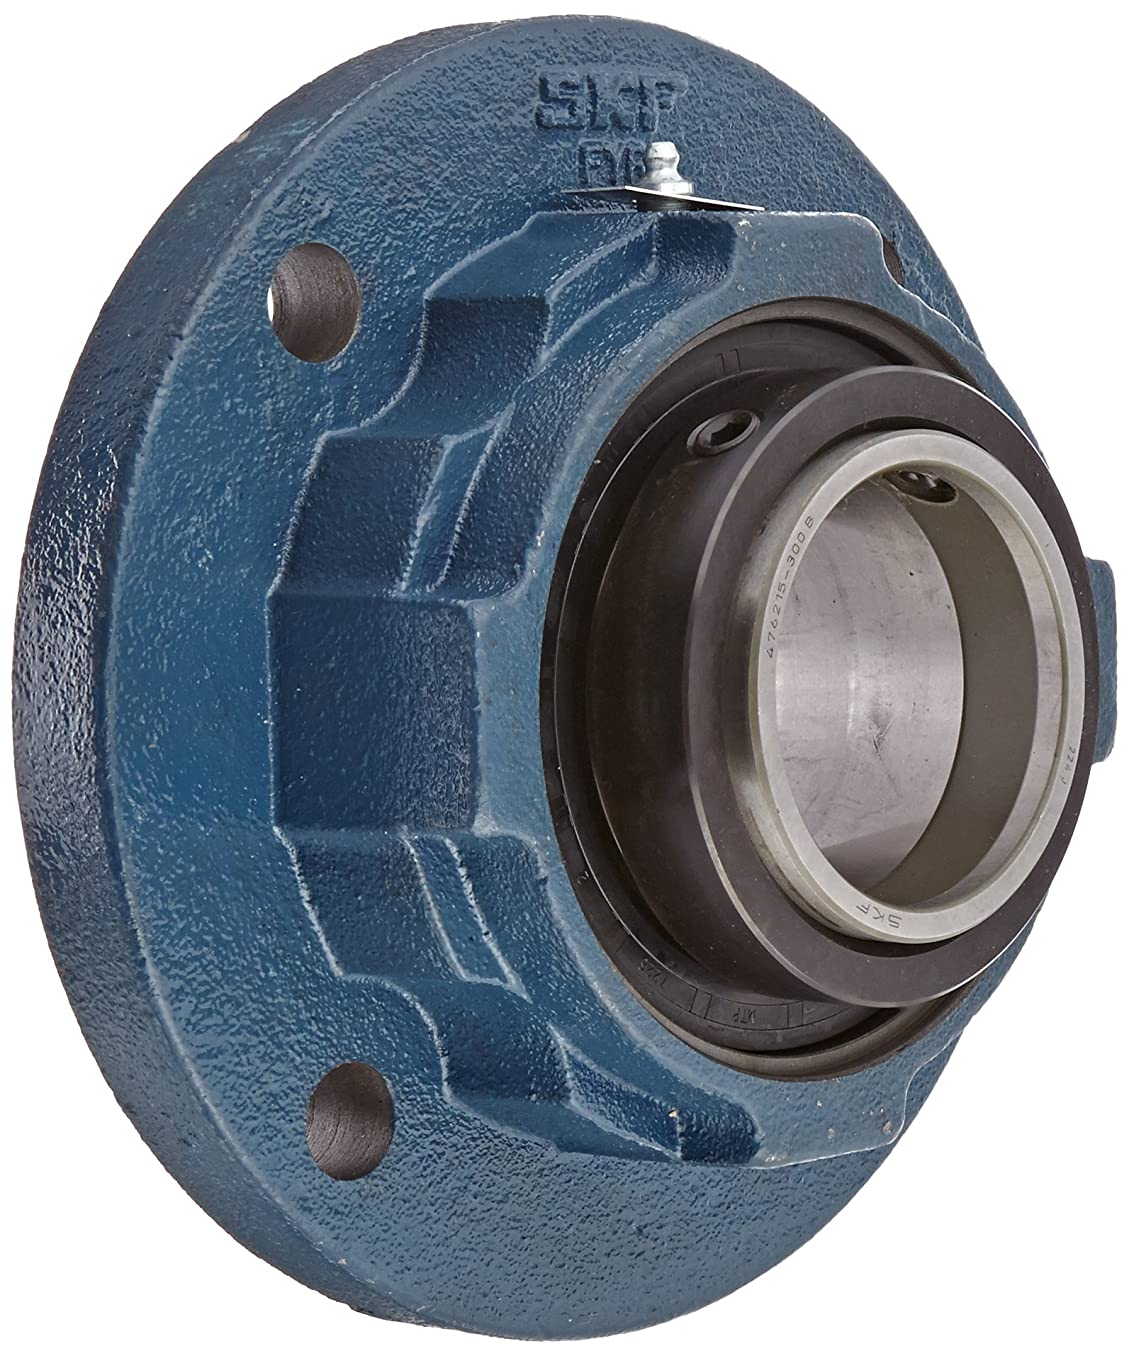 SKF FYR 2 Heavy-Duty Spherical Bearing Flange Unit, 4 Bolts, Setscrew Locking, Expansion Type, Regreasable, Contact Seal, Cast Iron, 2